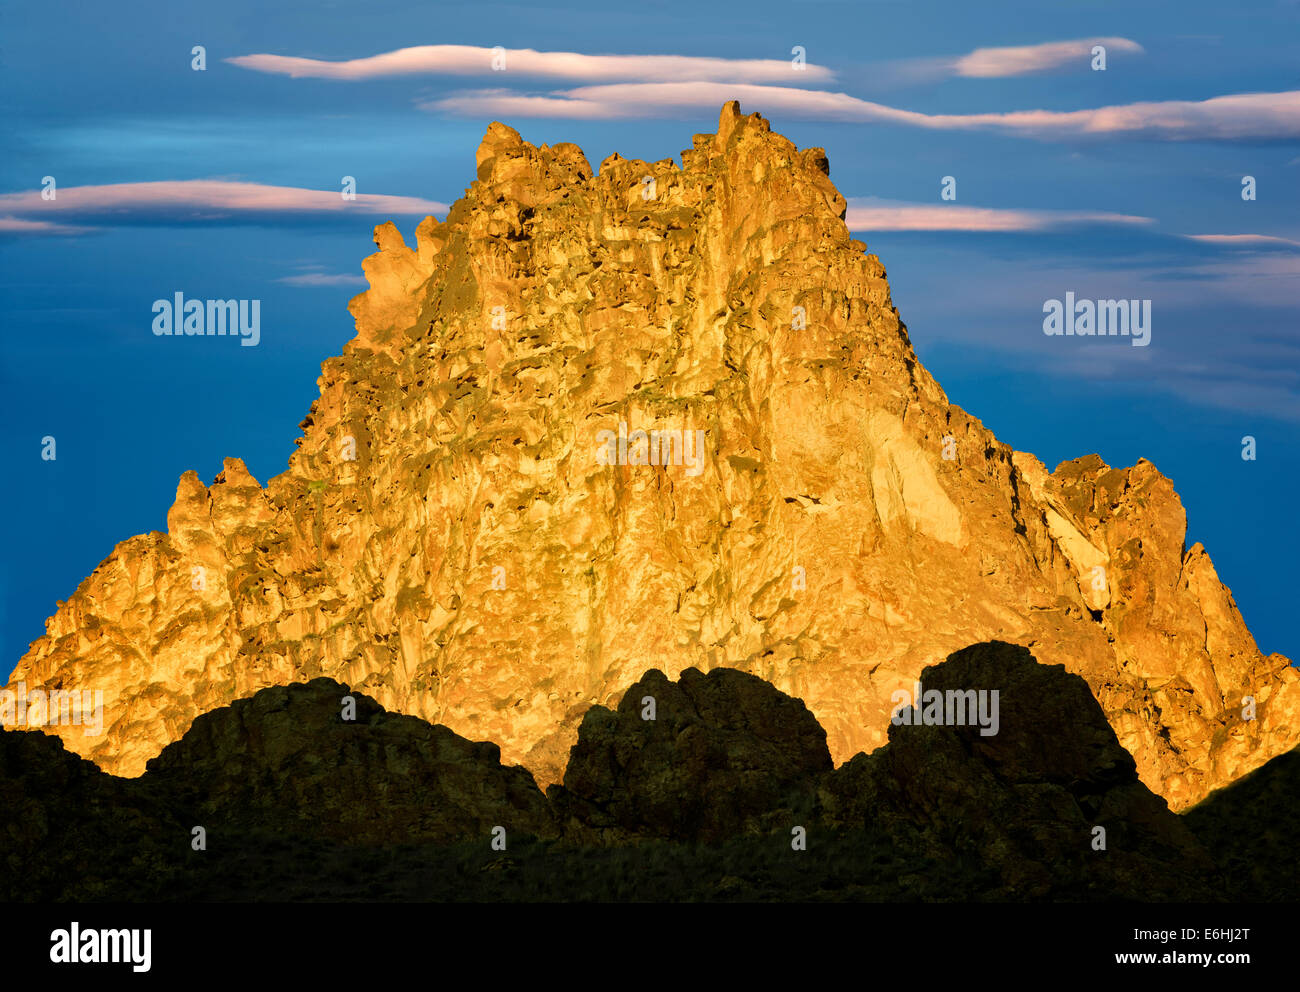 Silhouetted rock formations. Leslie Gultch, Malheur County, Oregon - Stock Image